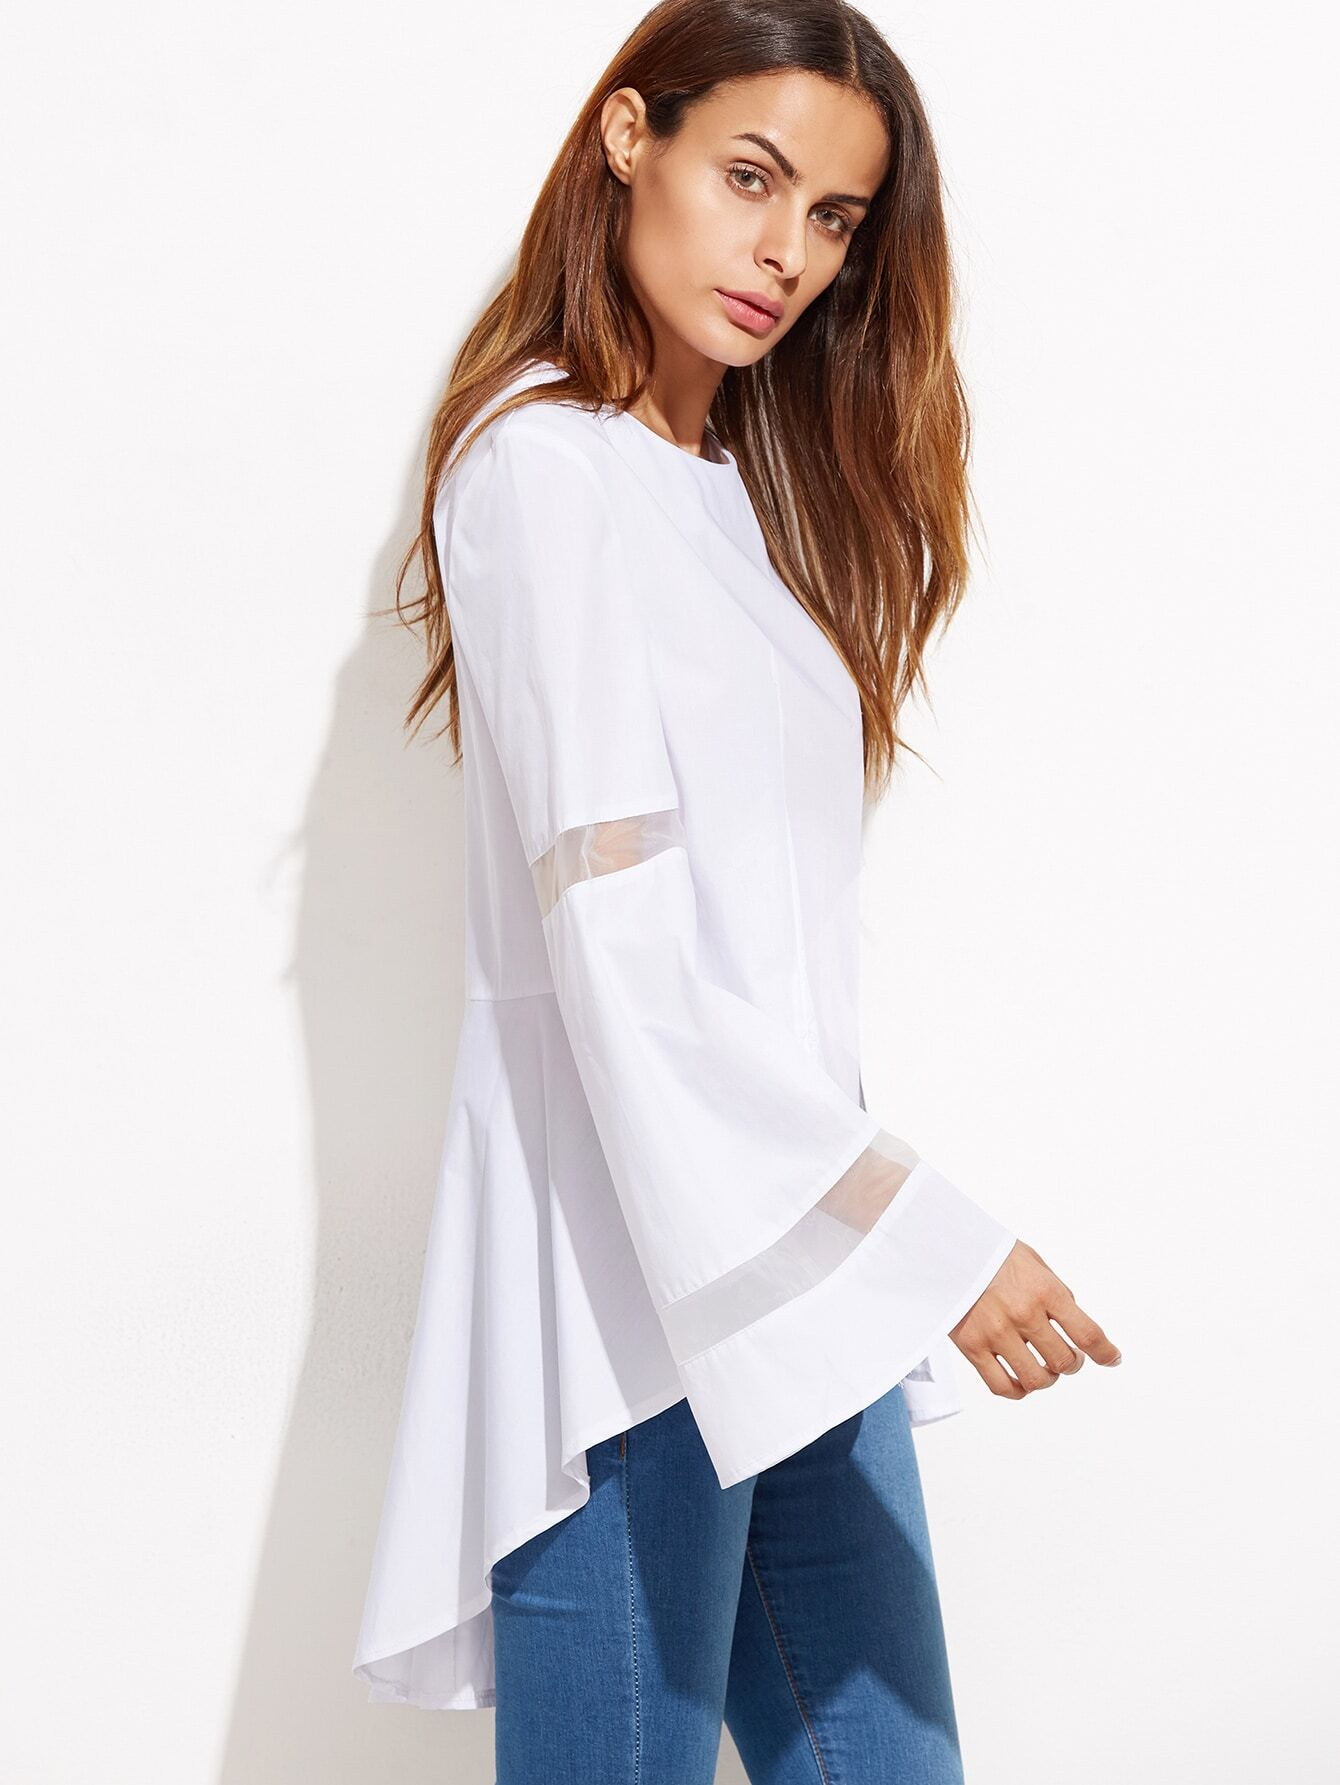 White Bell Sleeve High Low Mesh Insert TopWhite Bell Sleeve High Low Mesh Insert Top<br><br>color: White<br>size: one-size